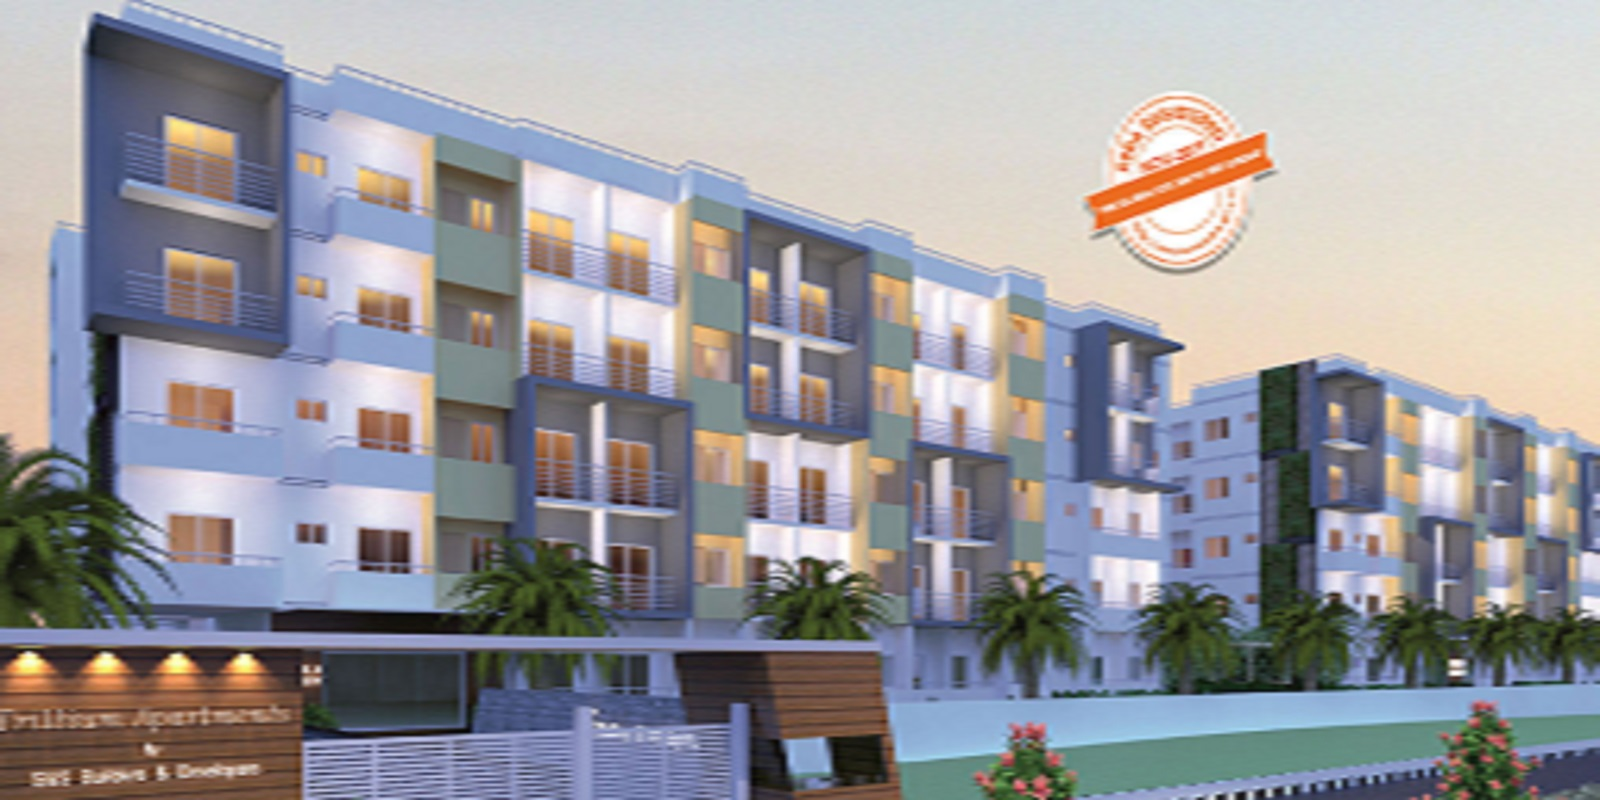 S And S Trillium Apartments Price On Request 2 Bhk 3 Bhk Bhk Floor Plans Available In Hosa Road Bangalore